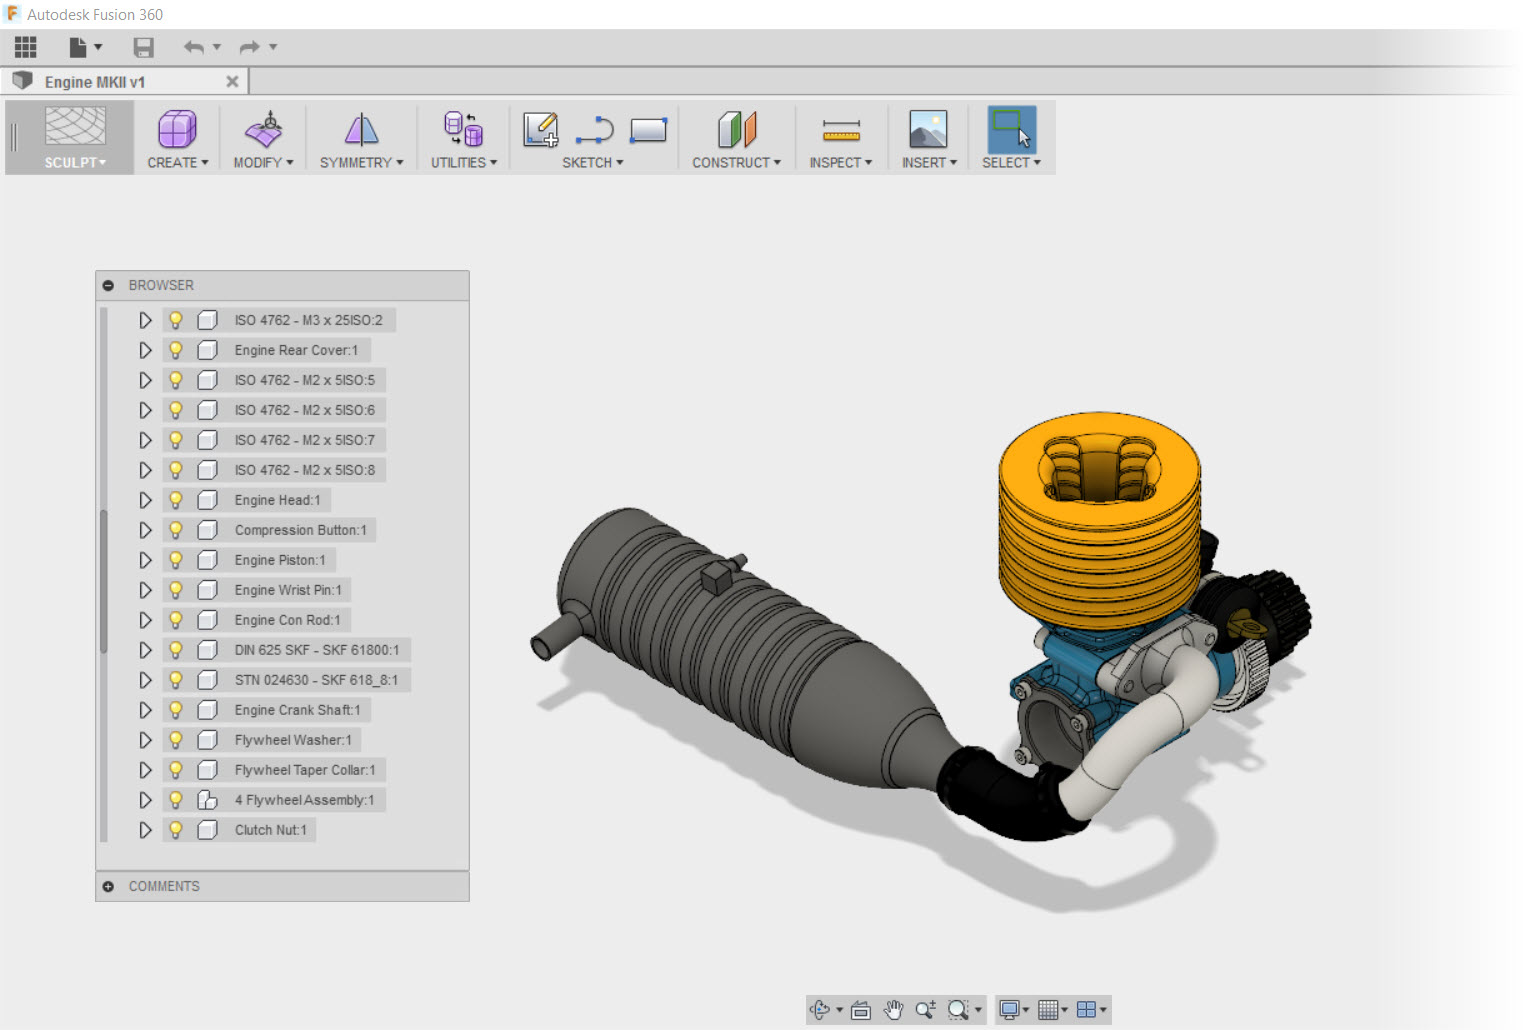 Fusion 360 as a Viewer - Another Step in the Learning